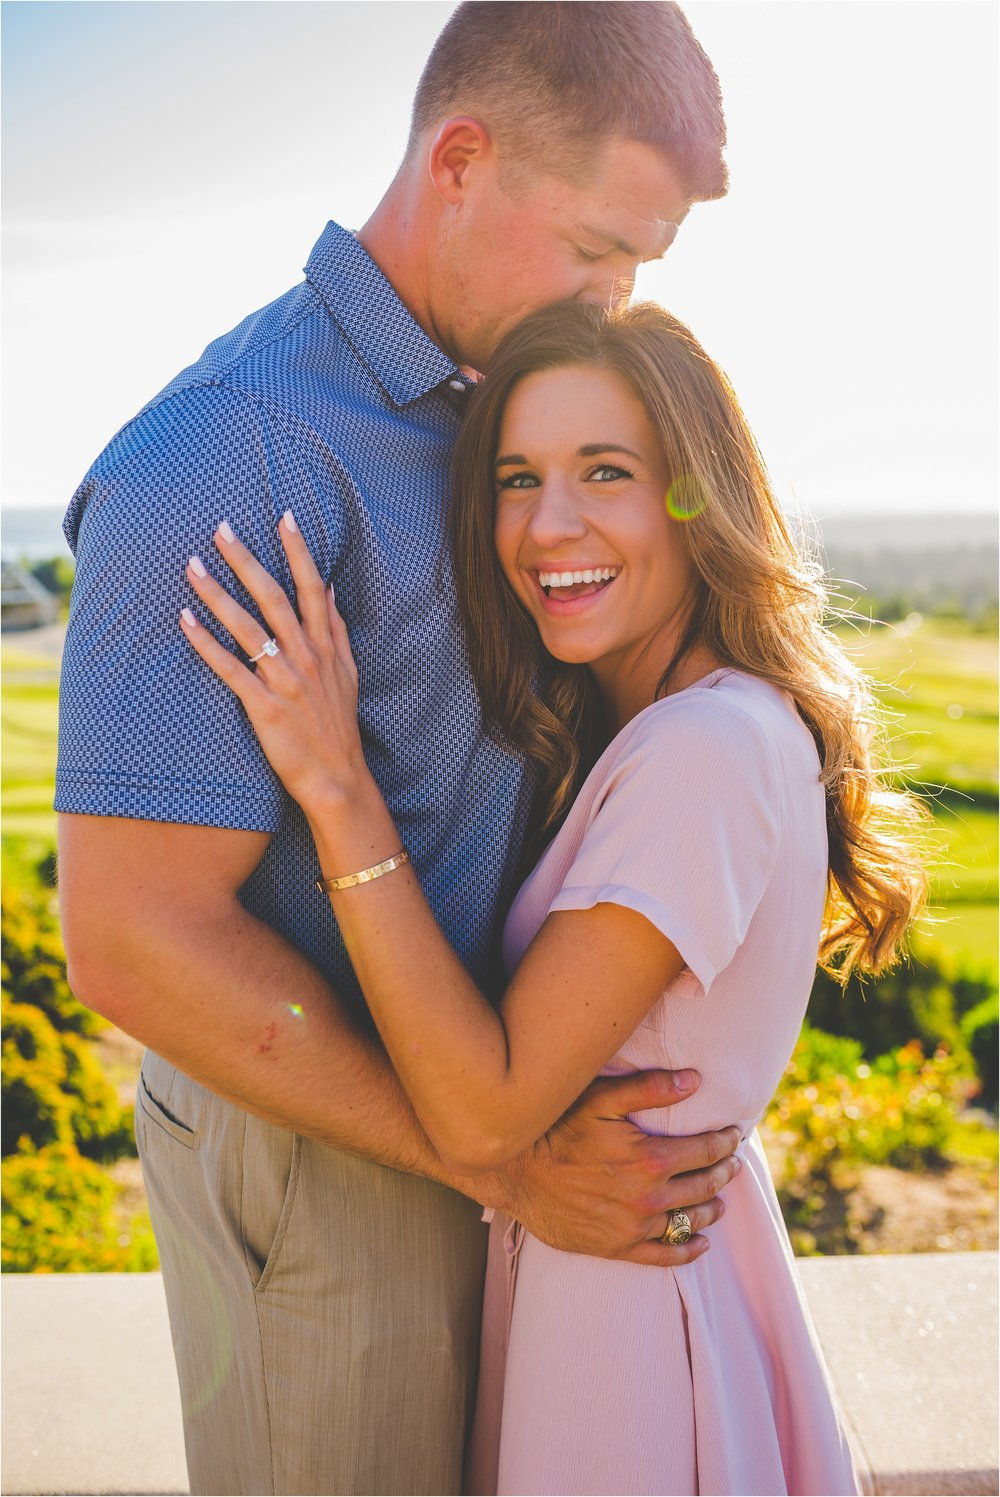 newcastle-golf-club-proposal-jannicka-mayte-seattle-washington-engagement-wedding-photographer_0034.jpg